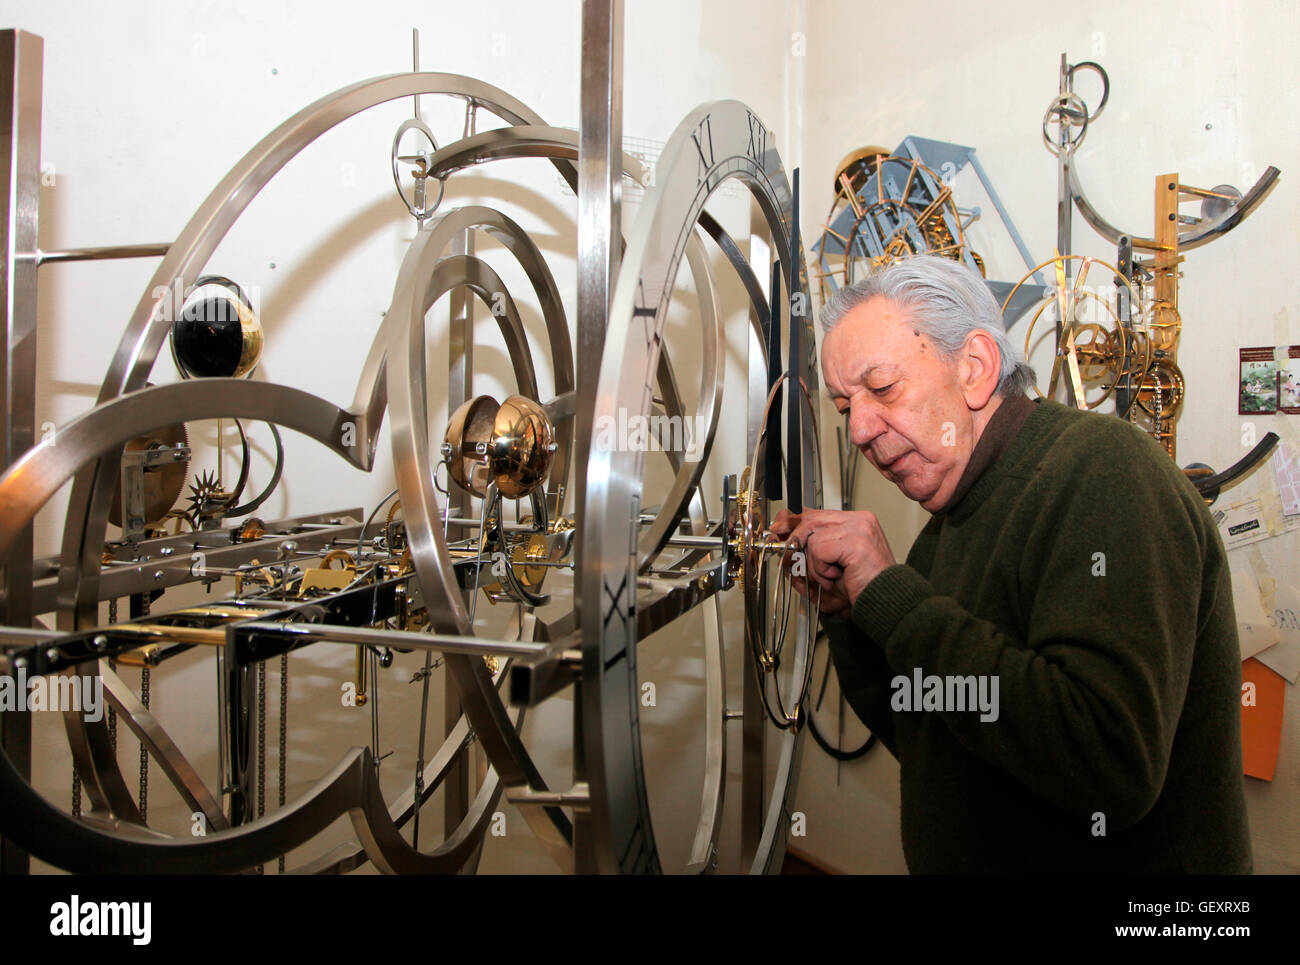 Master Swiss clockmaker Jean Kazez in his Geneva workshop working on a clock bound for Clochard in New York. - Stock Image